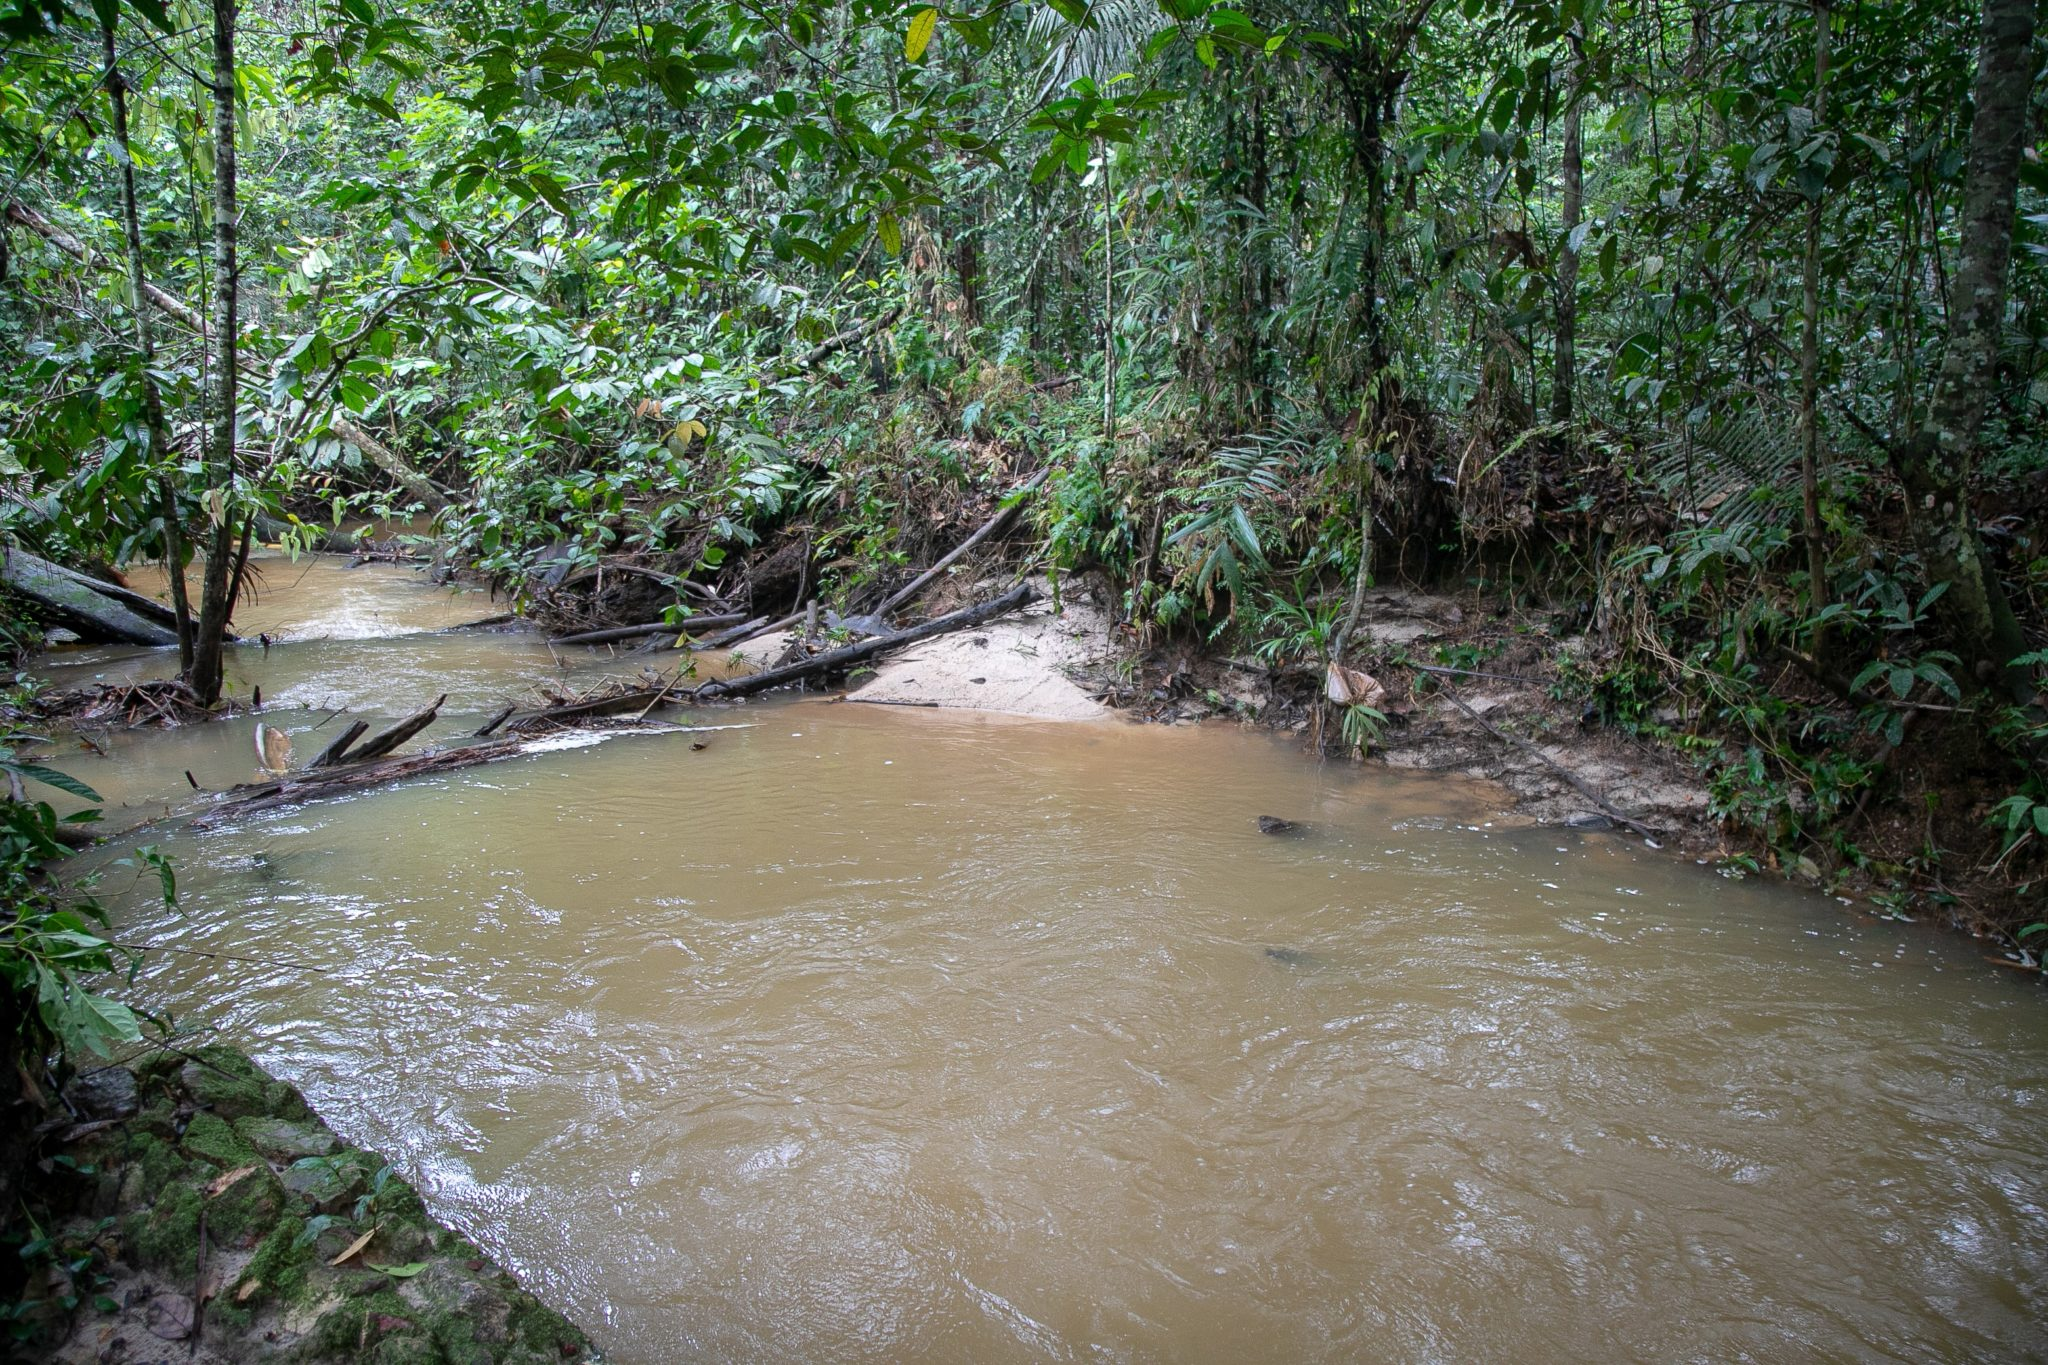 Overview of the Igarapé Água Branca, the last clean stream in the city of Manaus, the capital of Amazonas state, in the Amazon region. Image by César Nogueira.